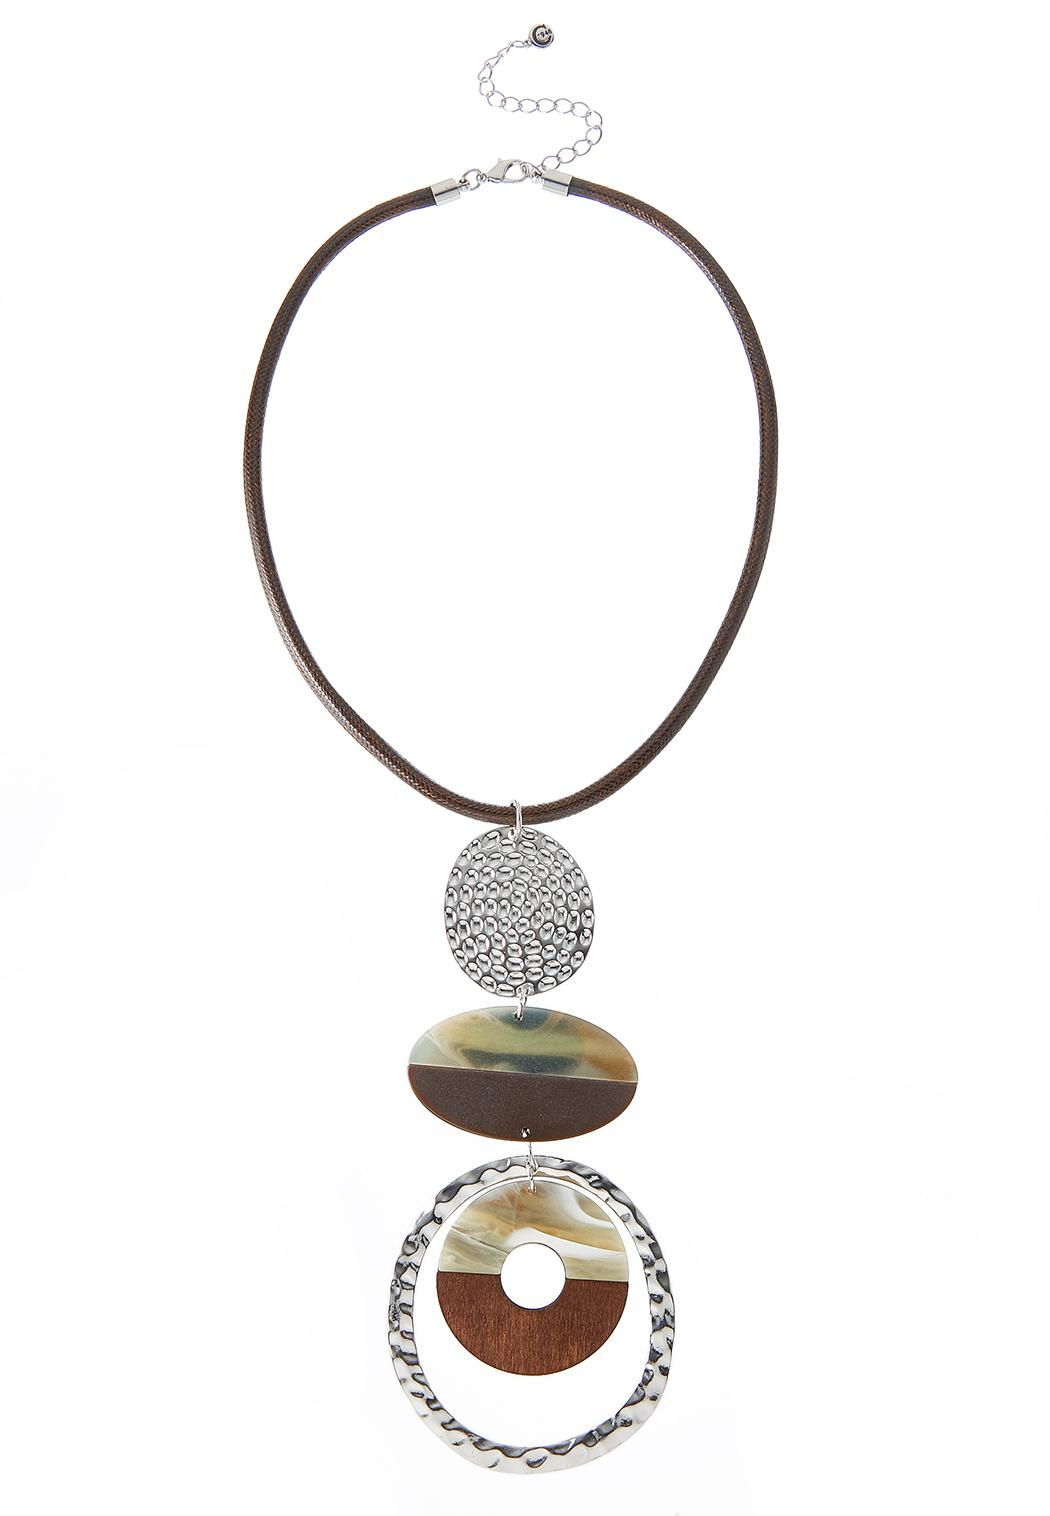 Mixed Material Statement Necklace